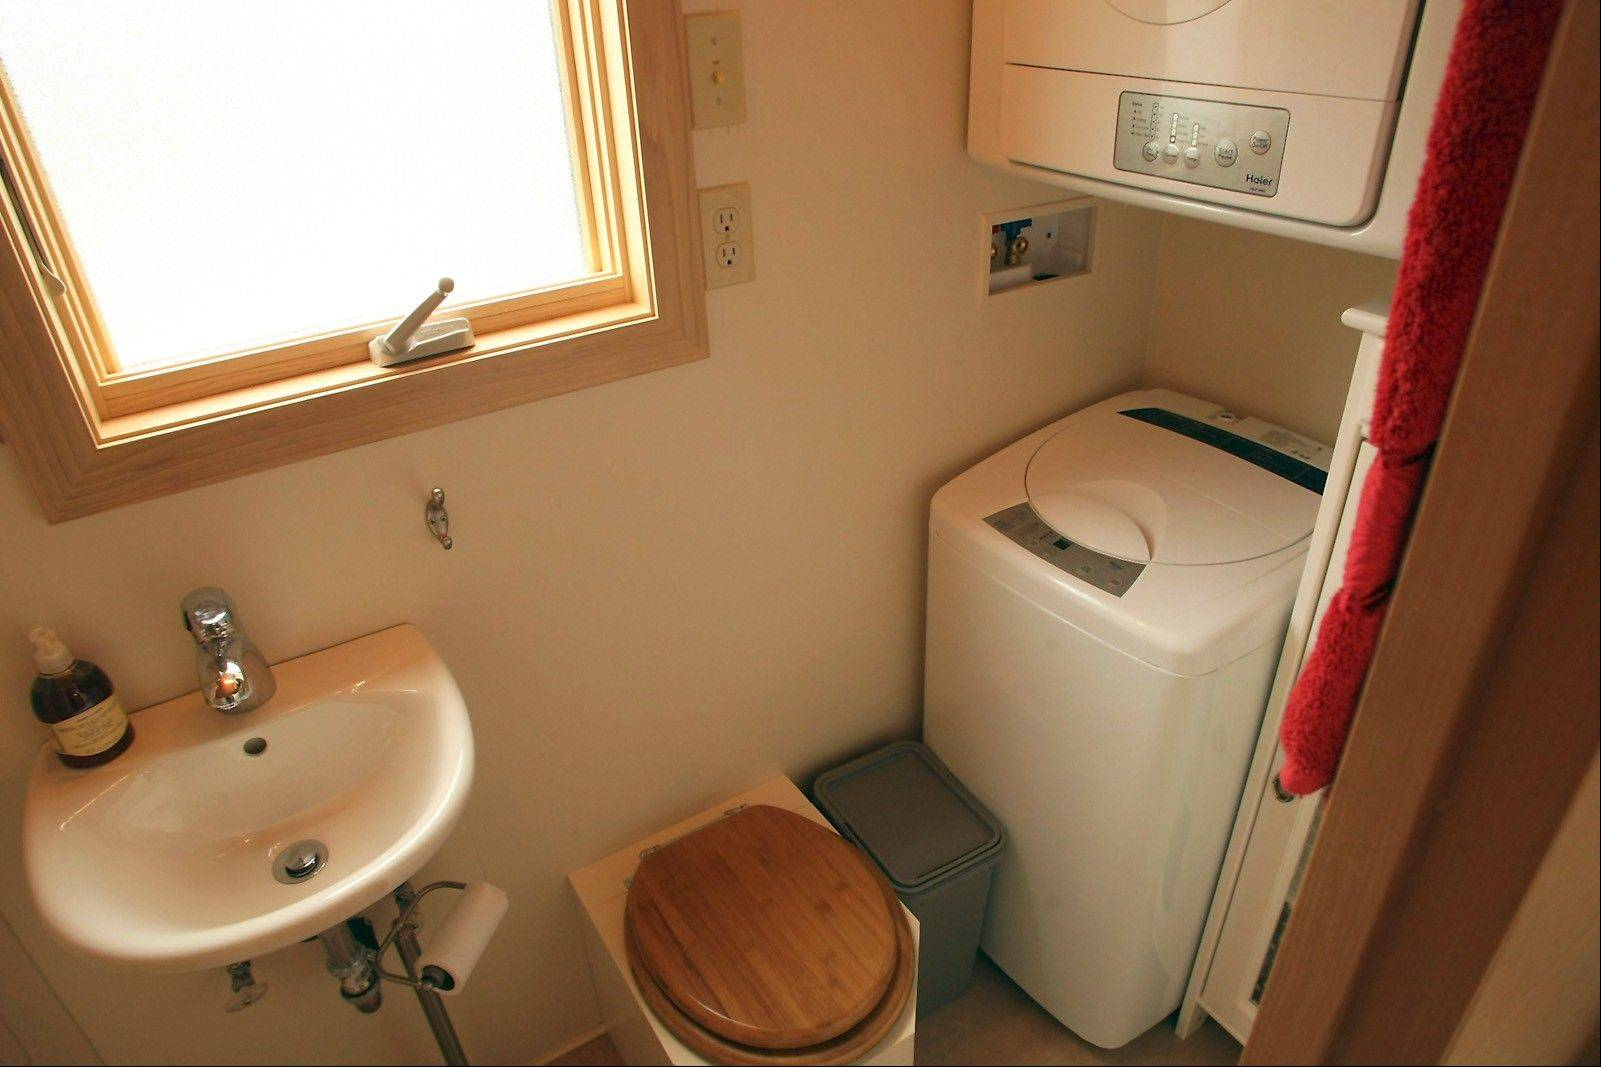 The bathroom features a small clothes washer and dryer.